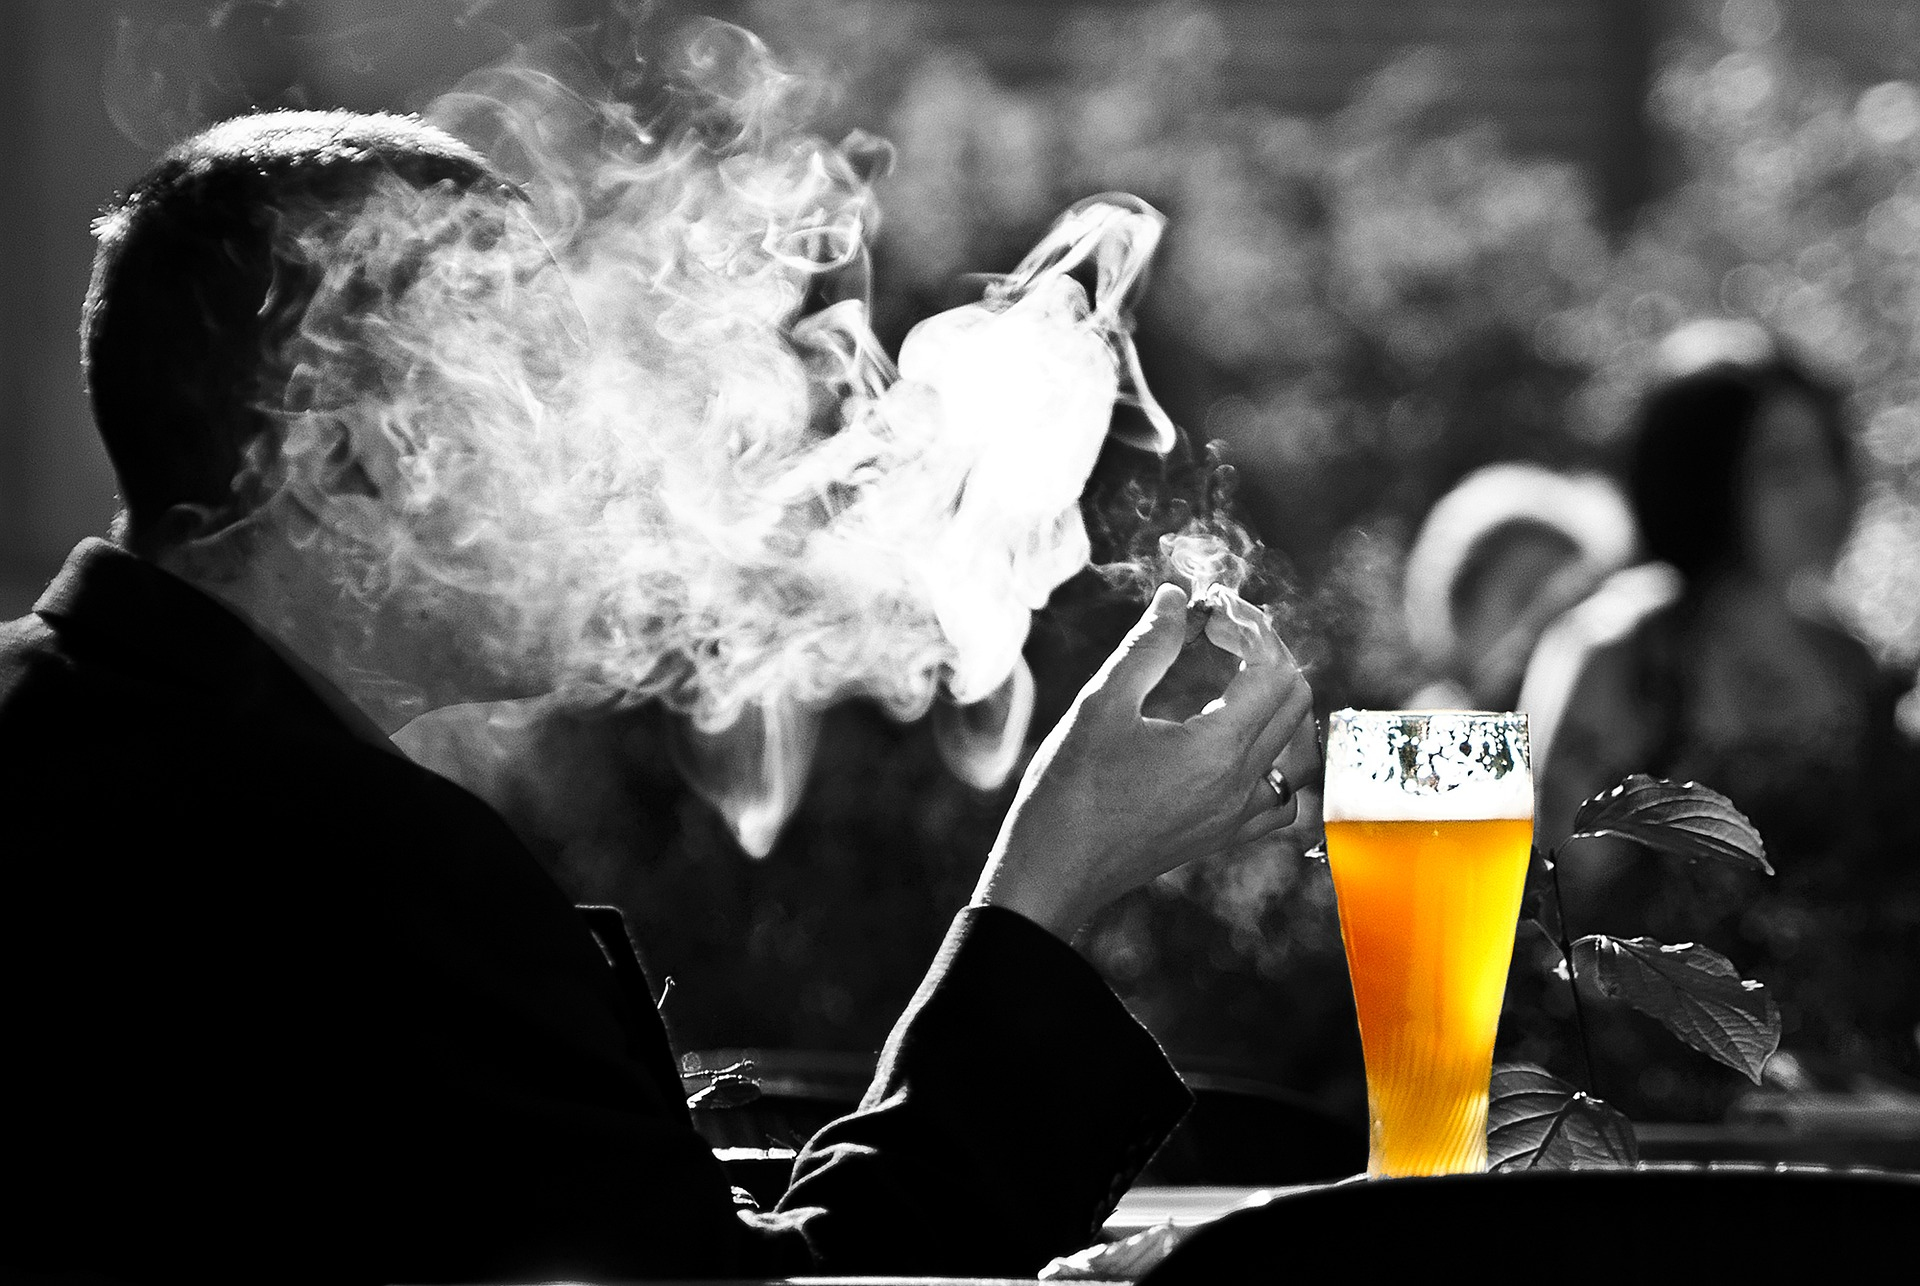 Man smoking a cigarette and drinking beer